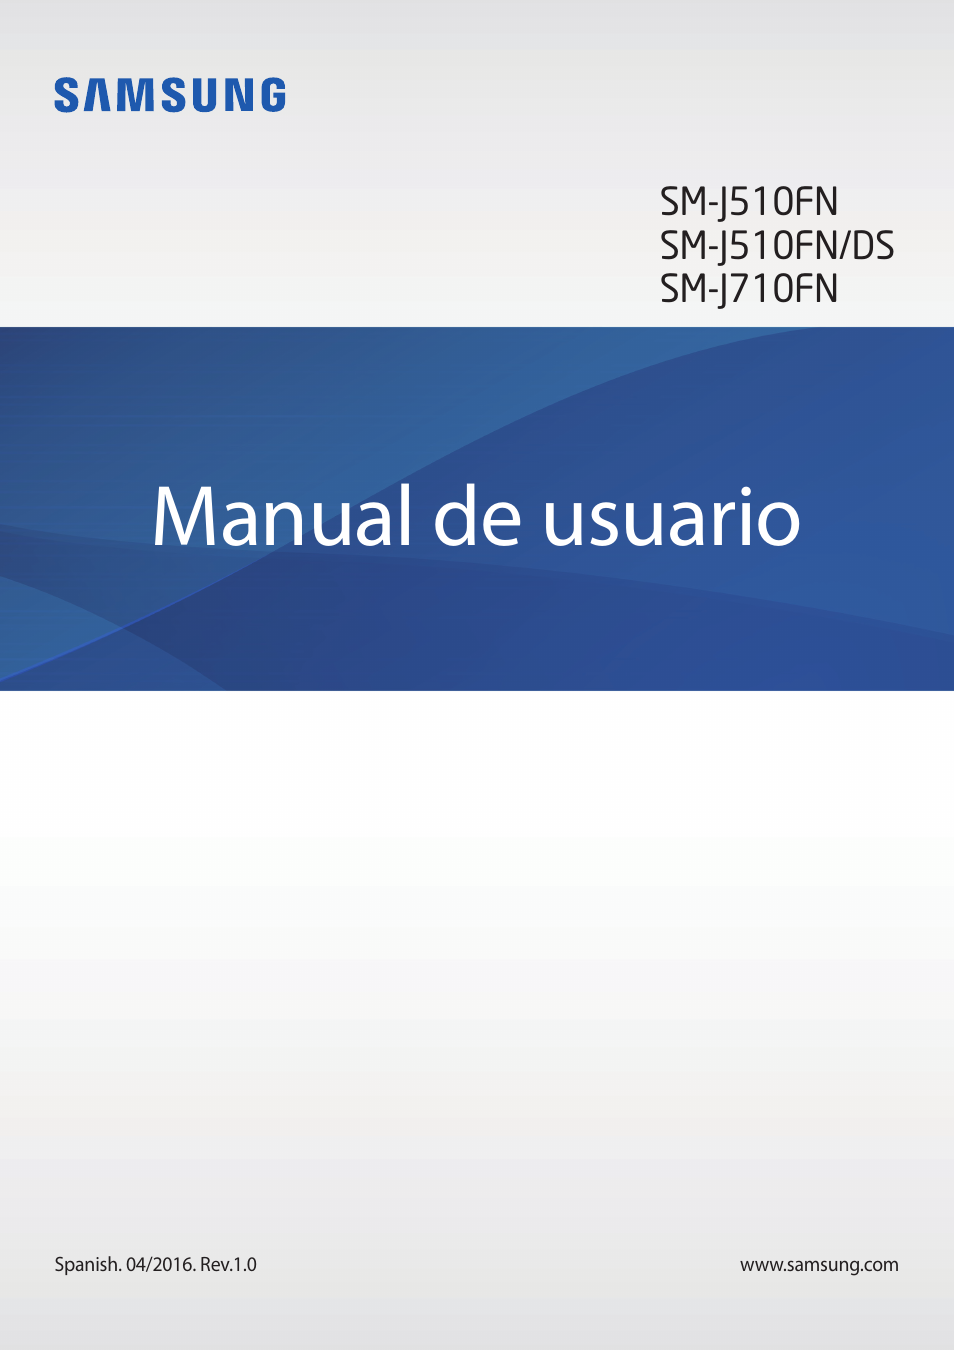 samsung galaxy j5 sm j510fn manual del usuario p u00e1ginas Manual De  Usuario Samsung